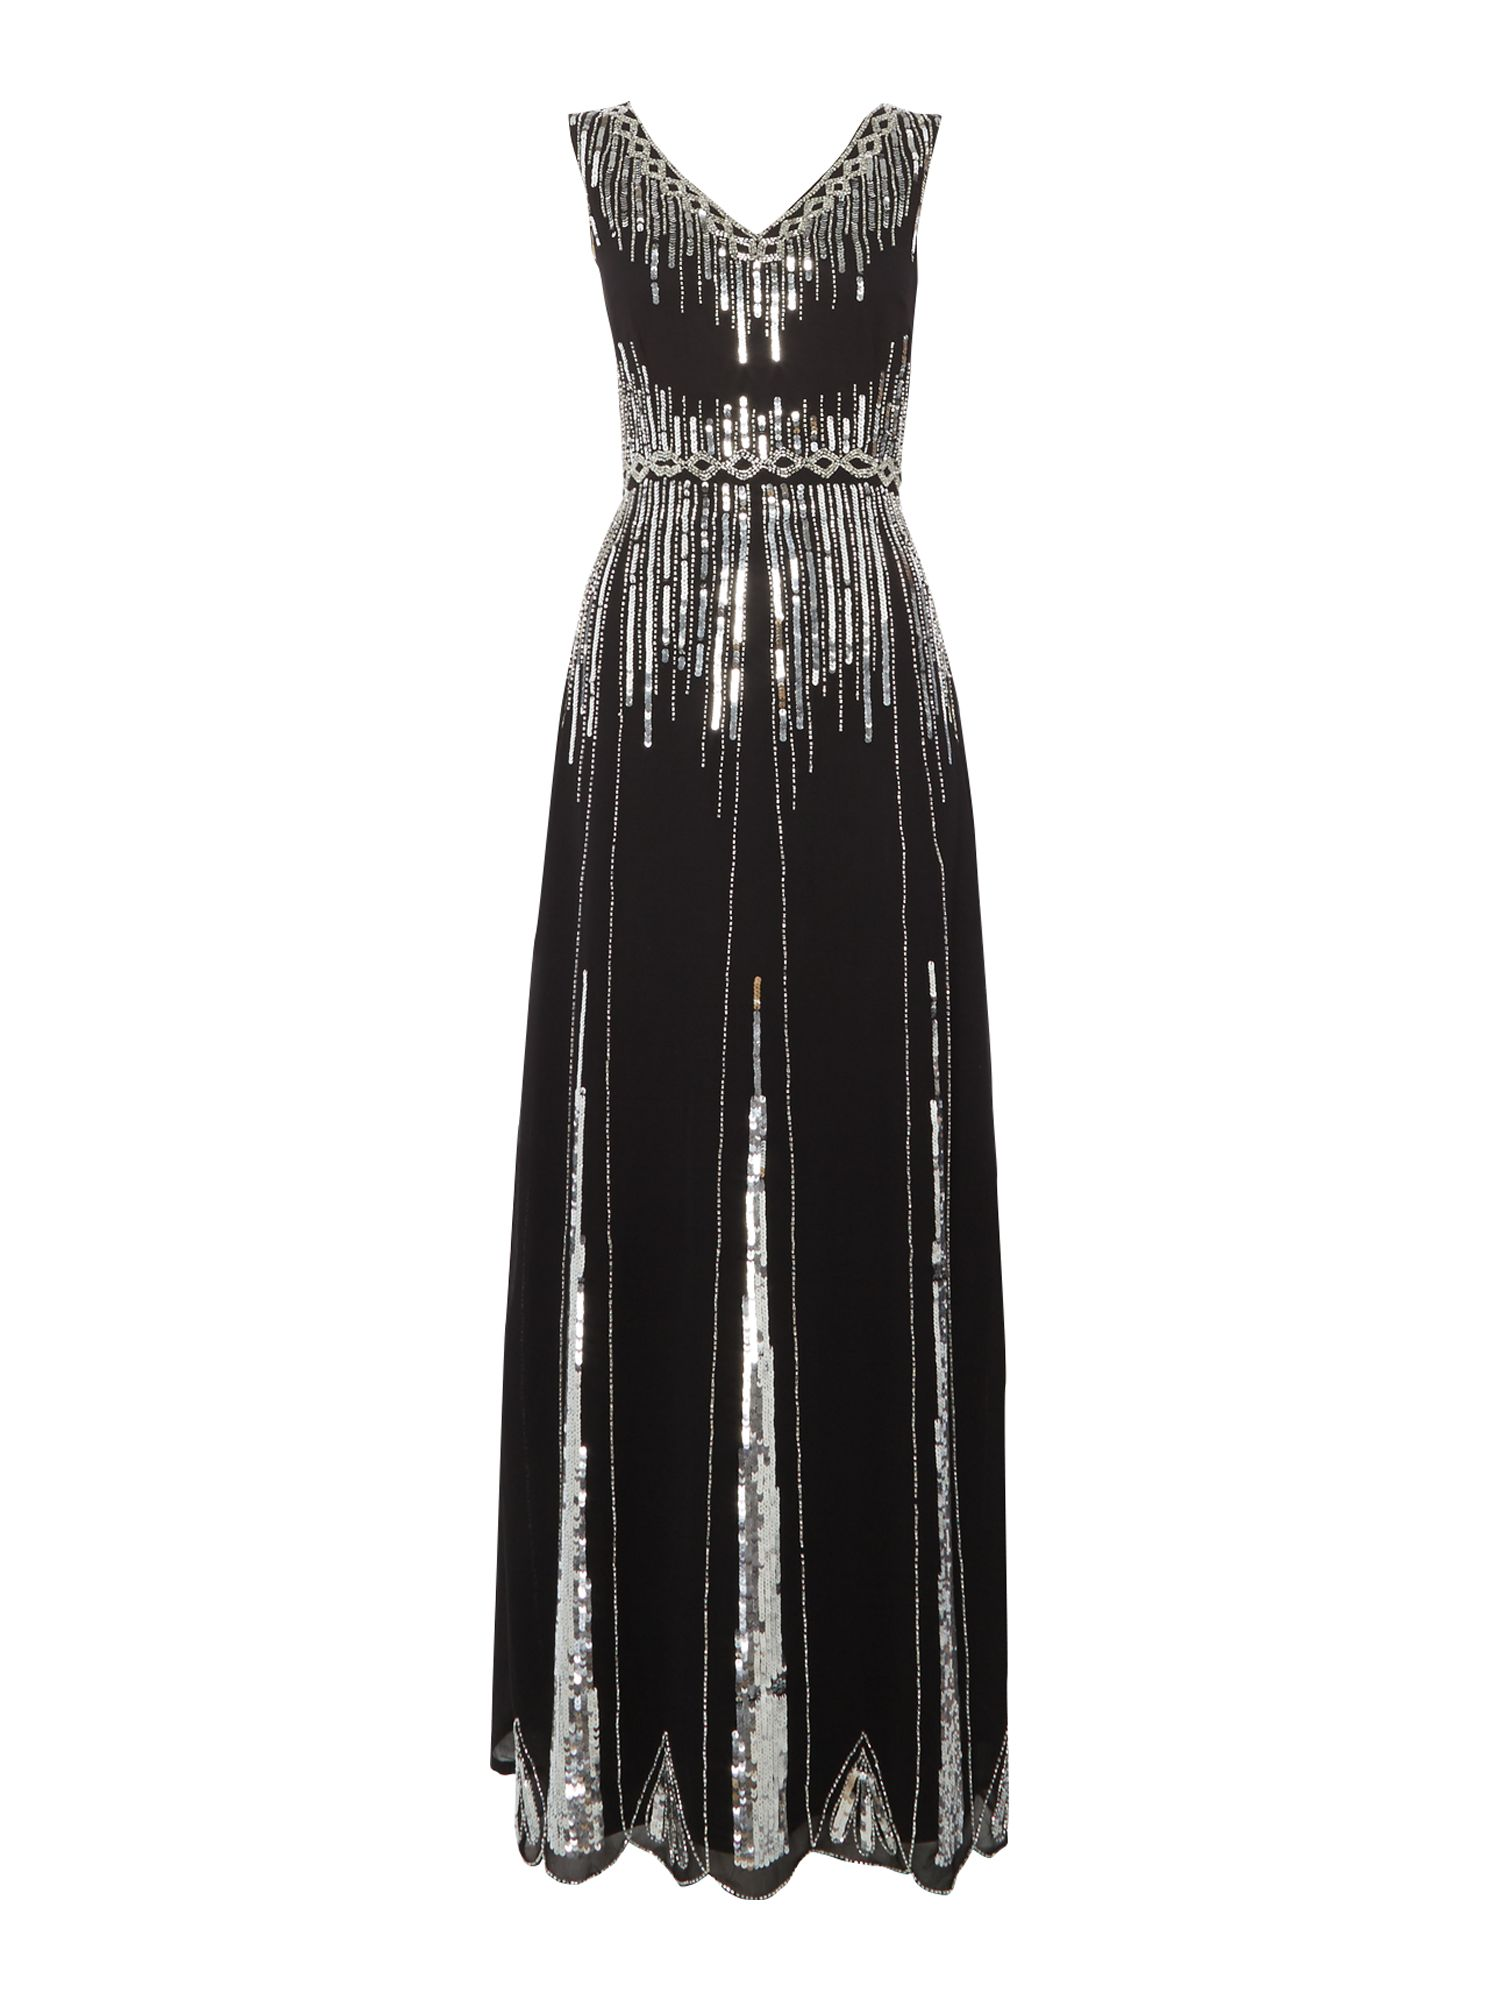 Lace and Beads Lace and Beads Sleeveless V Neck Maxi Dress, Black